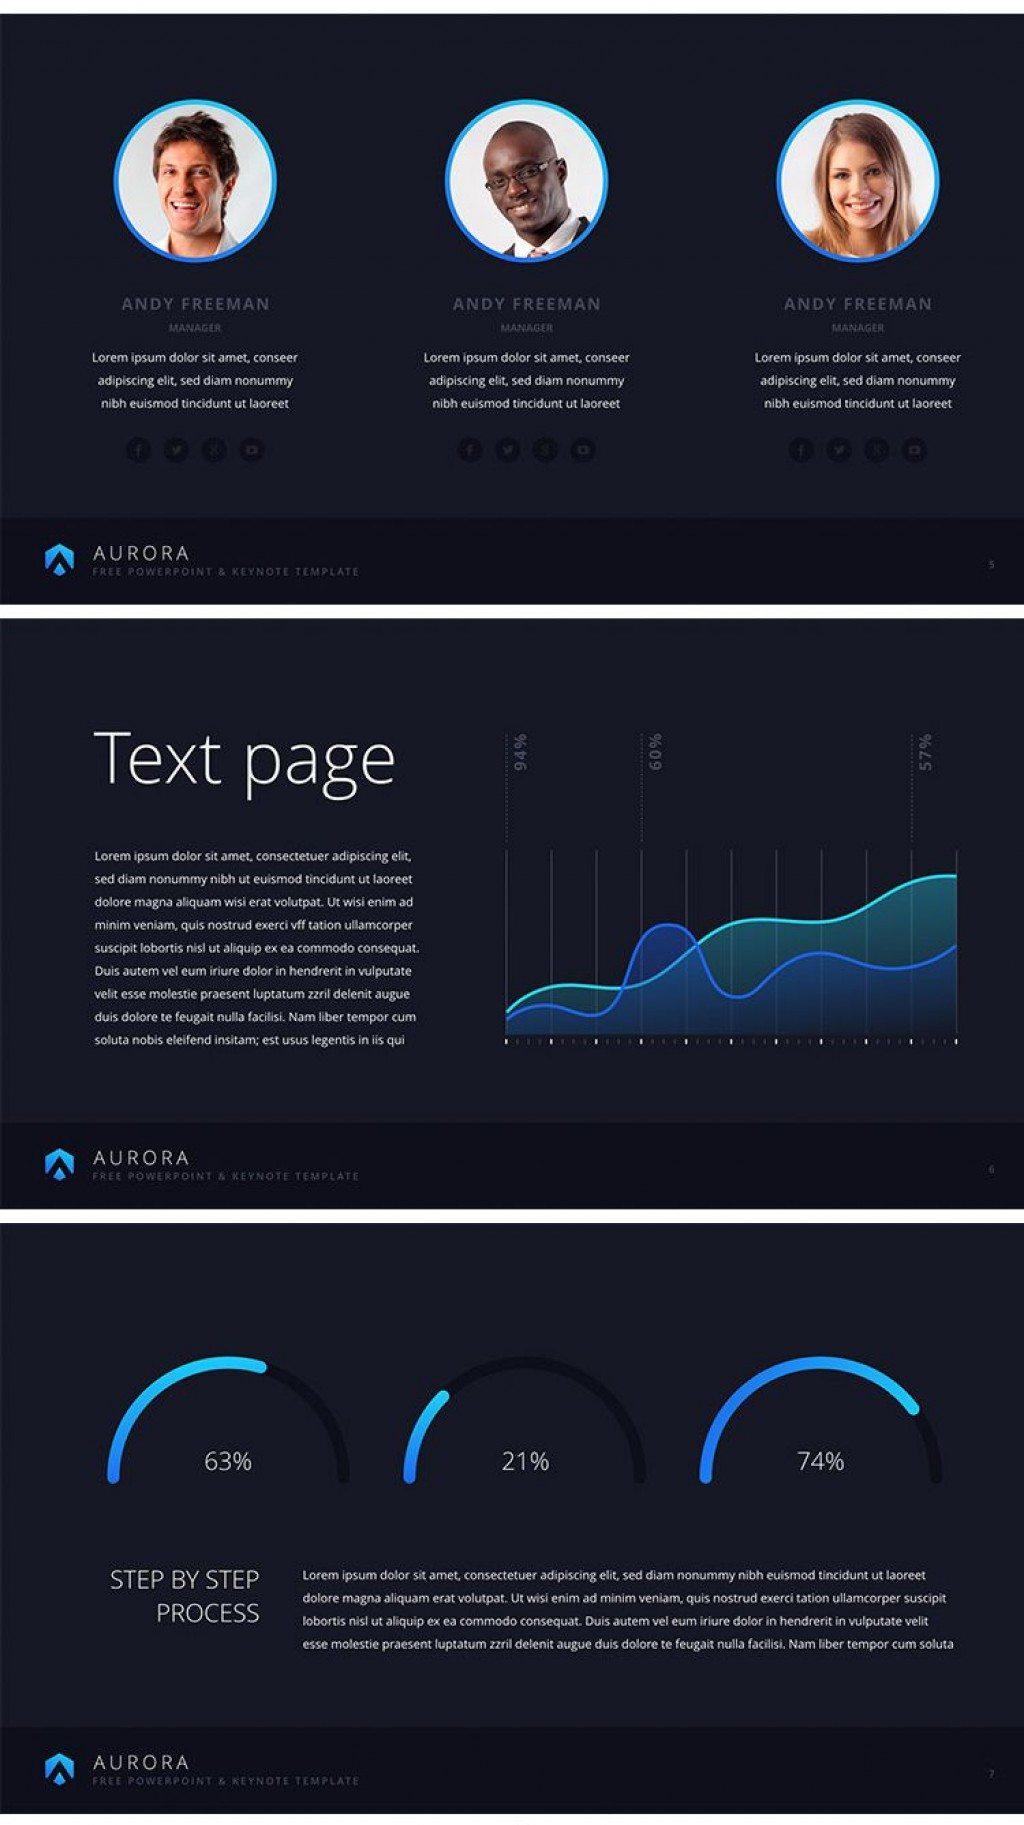 003 Impressive Social Media Trend 2017  Powerpoint Template Free High Definition -Large